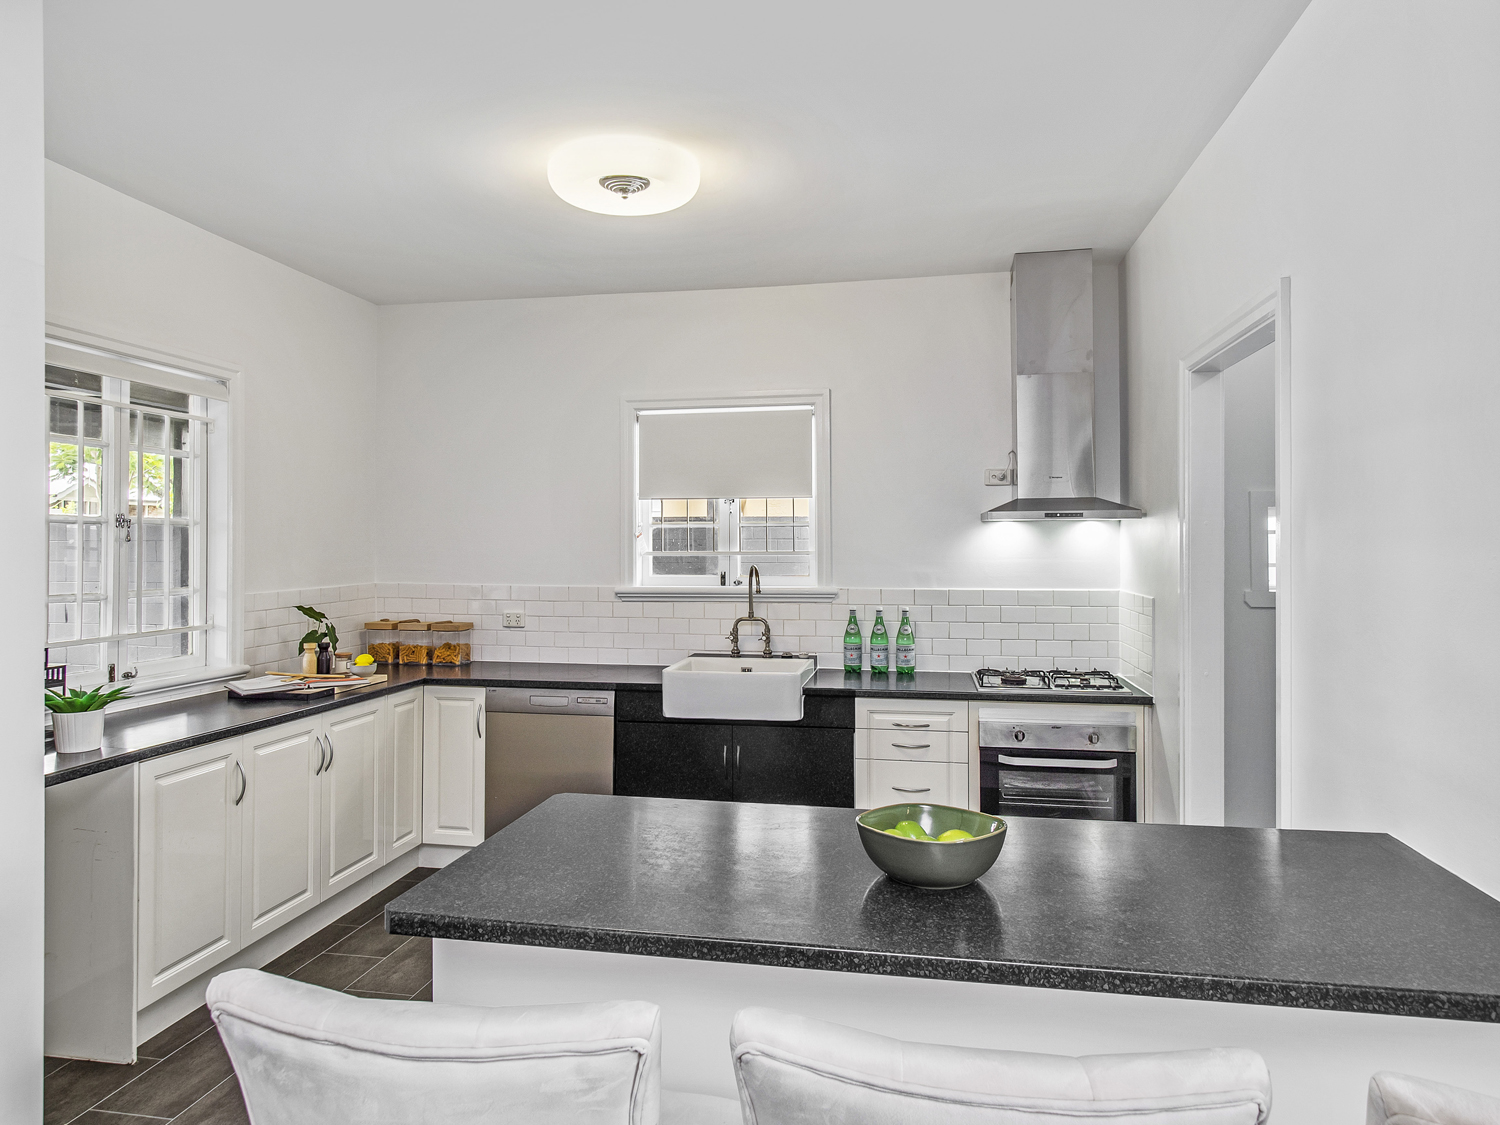 Capturing the kitchen -  Photographing a new property listing at Wavell Heights Brisbane